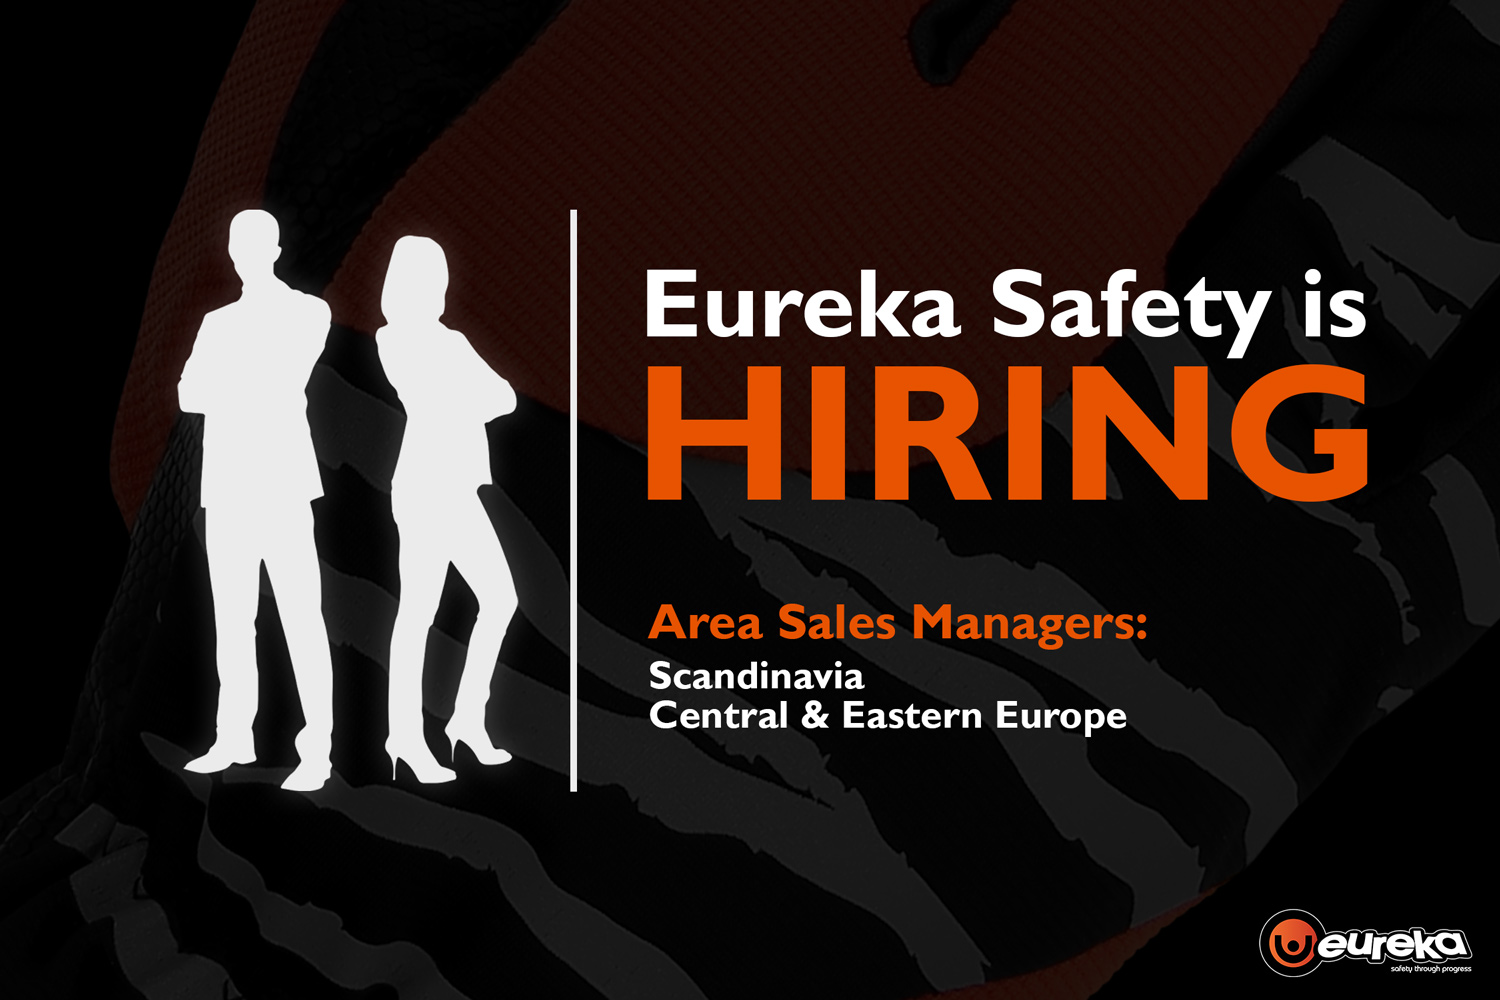 Eureka Safety is hiring